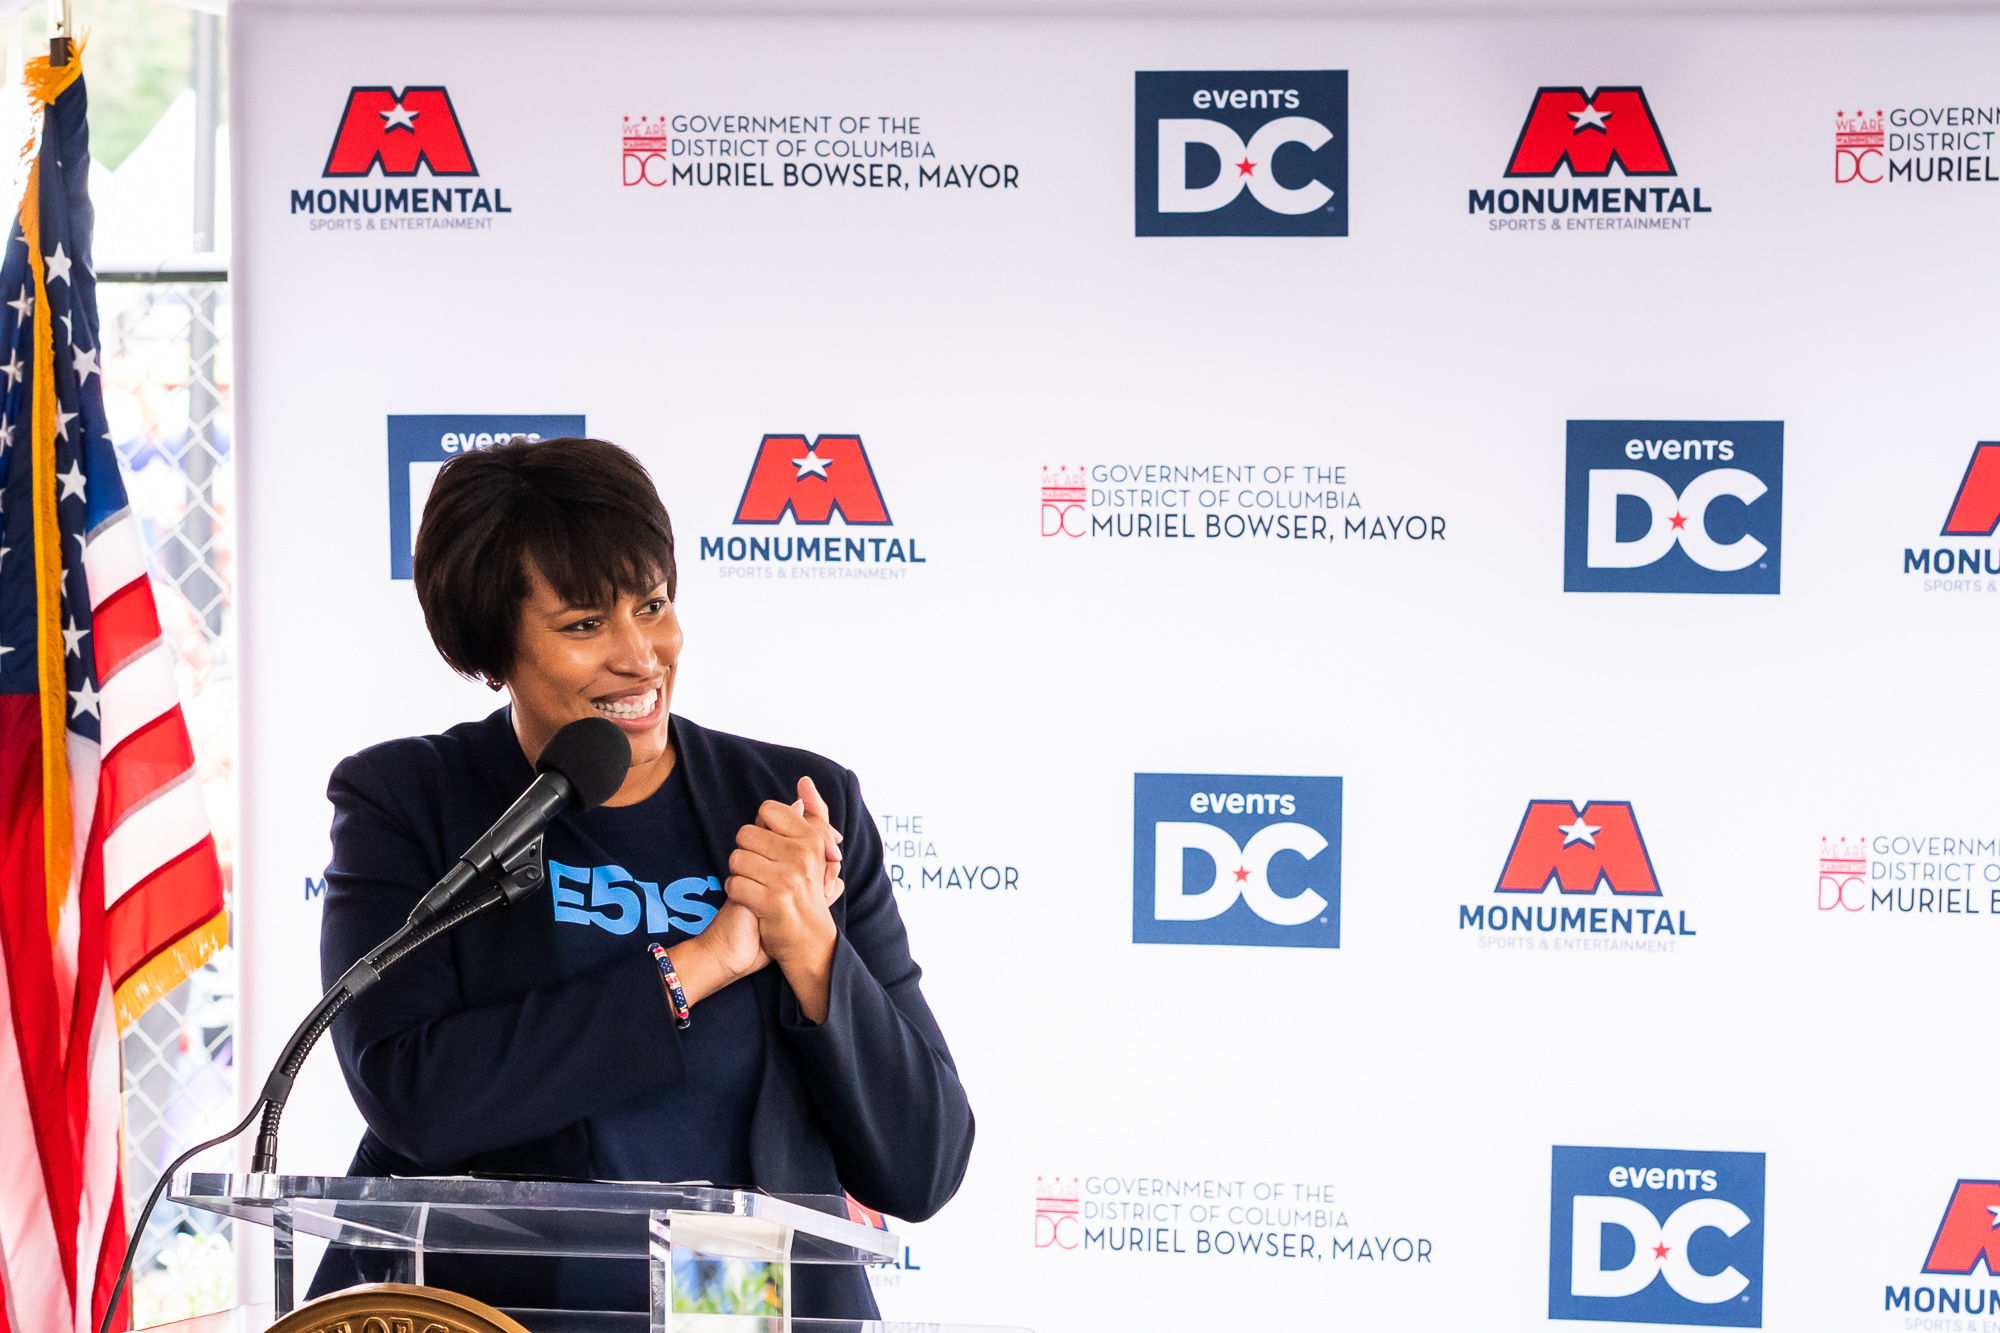 006-Christopher-Jason-Studios-monumental-sports-and-entertainment-events-dc-washginton-mystics-arena-opening-washington-dc-event-photography-mayor-muriel-bowser-speaks-in-front-of-group-of-people.jpg